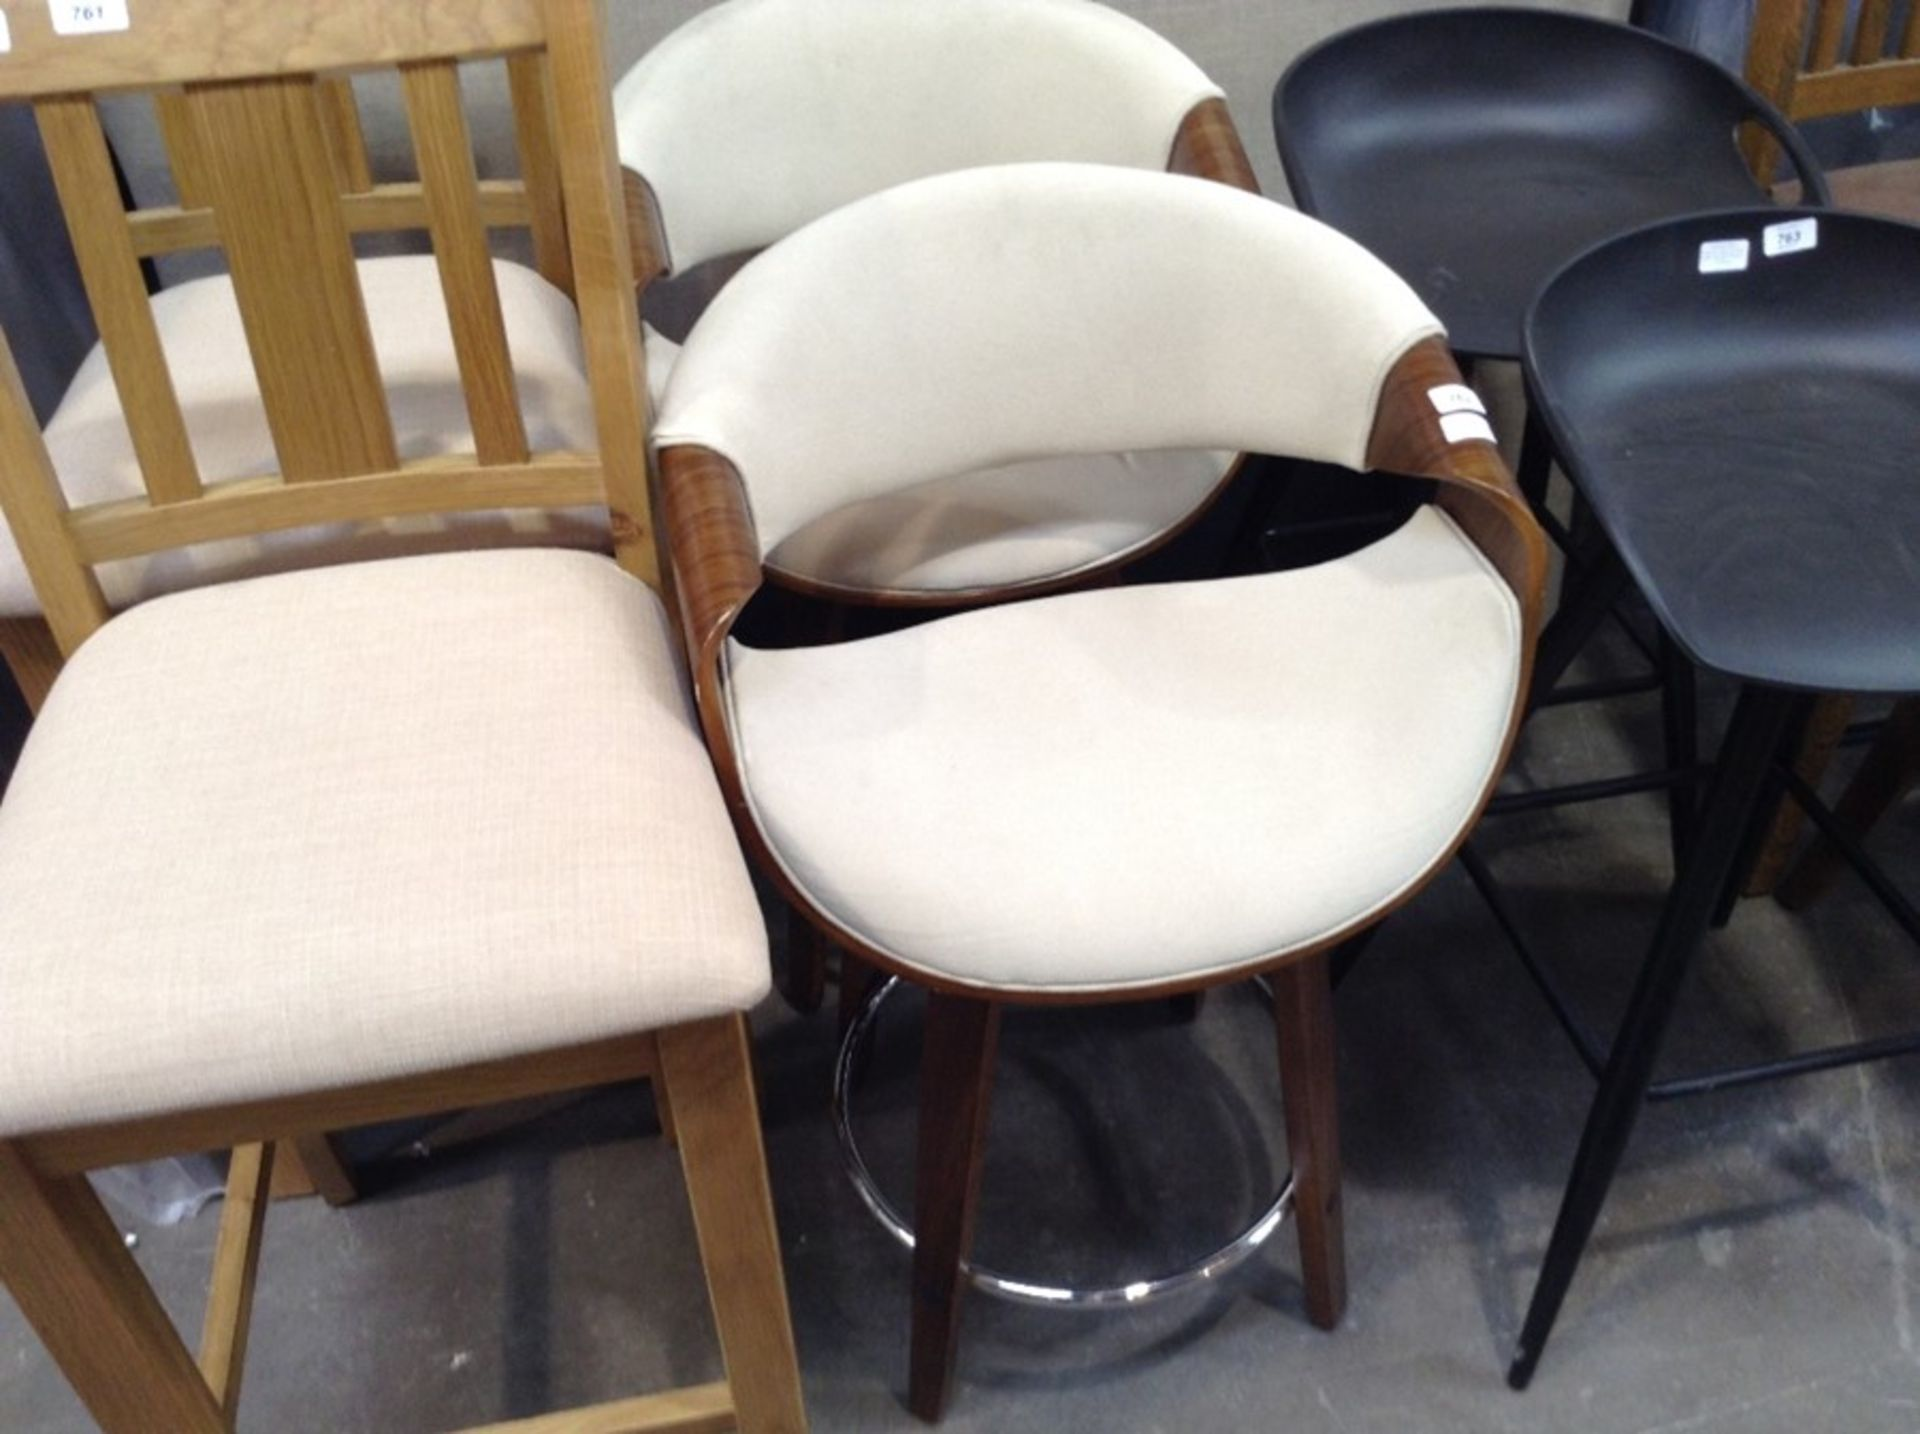 Lot 579 - George Oliver, Auburn 61cm Swivel Bar Stool x2 RRP